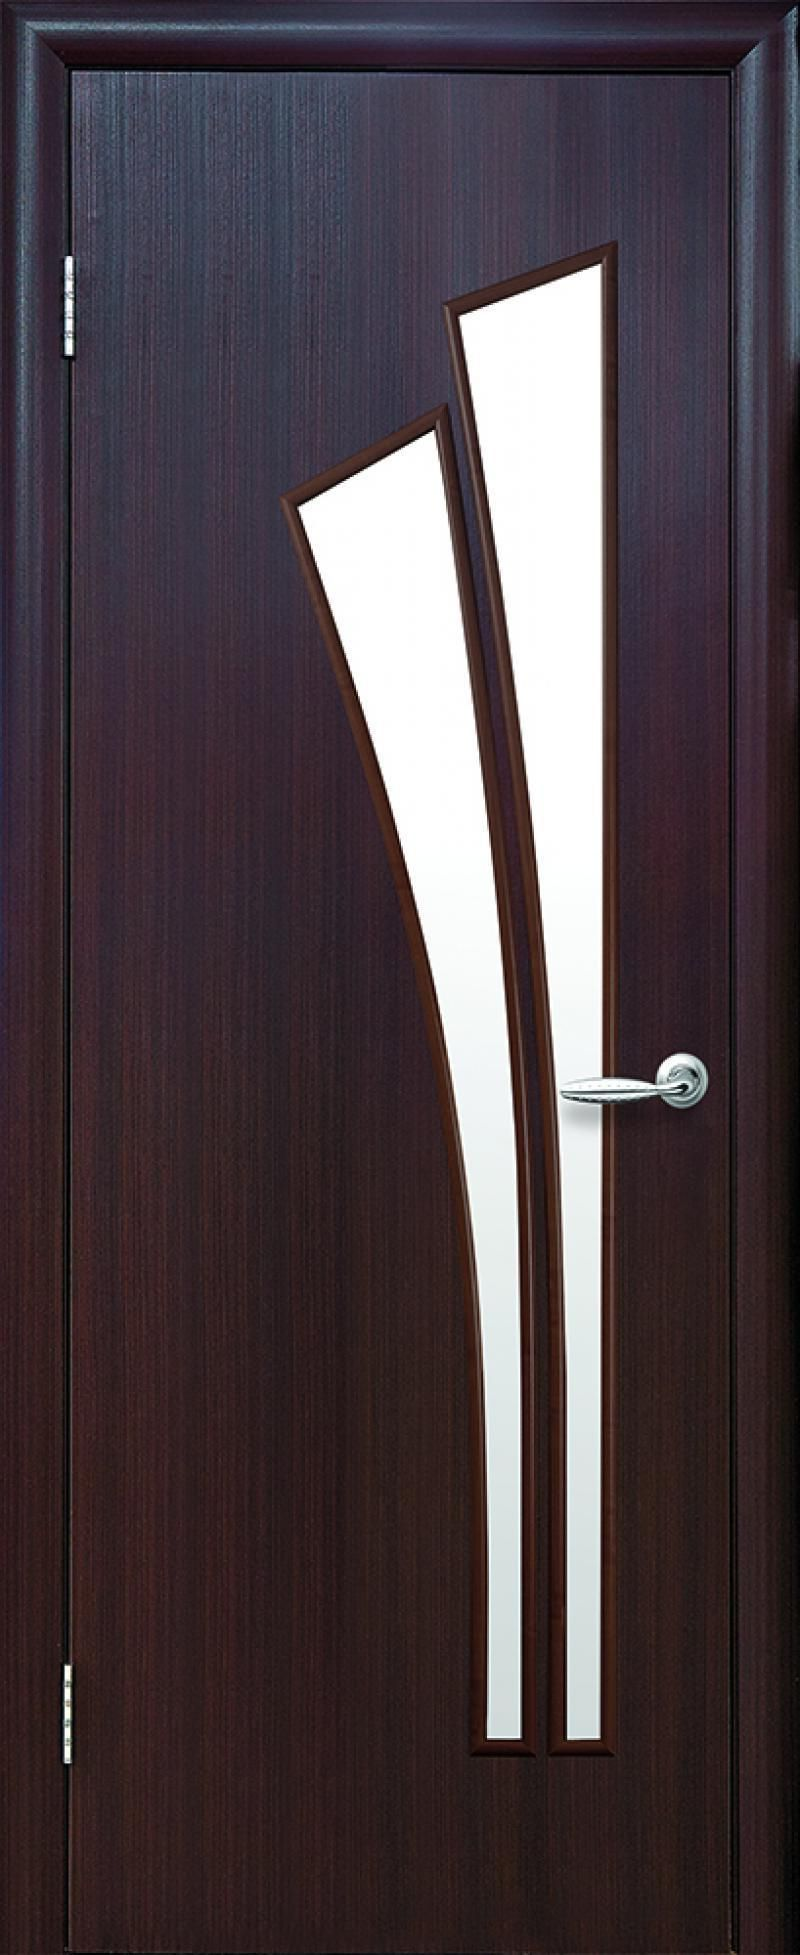 Modern interior door design for Home door design